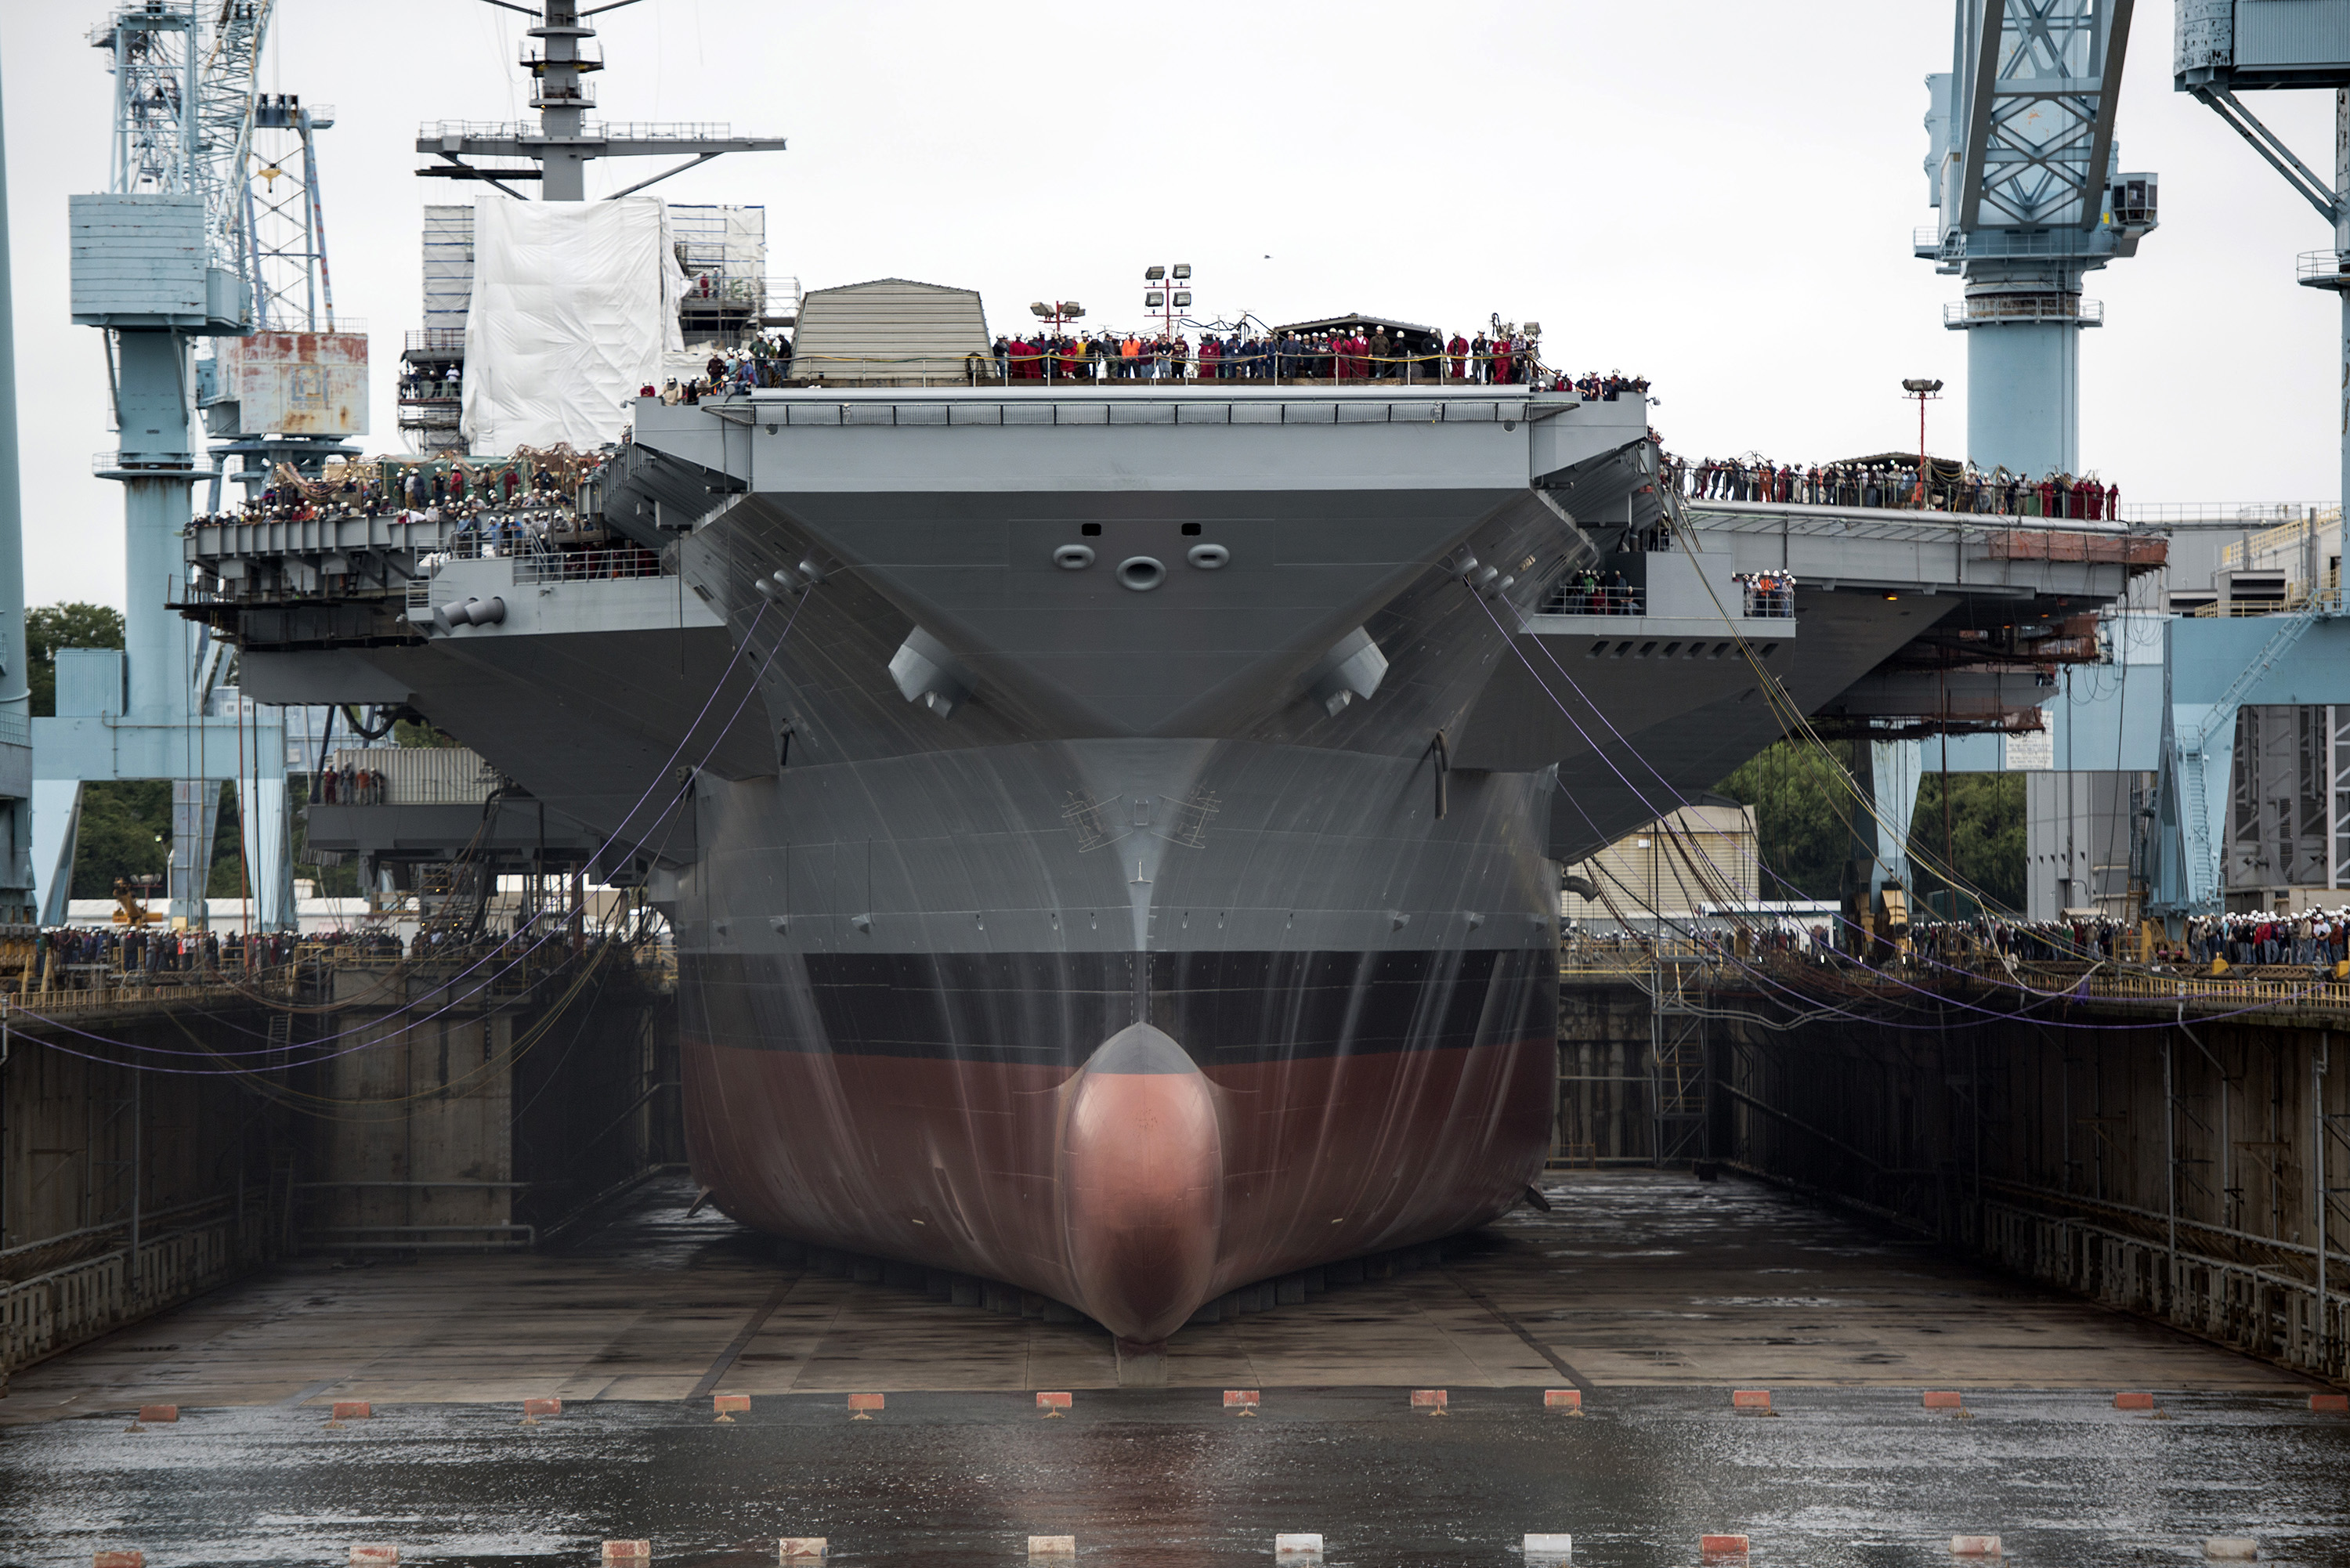 USS_Gerald_R._Ford_(CVN-78)_in_dry_dock_front_view_2013.JPG